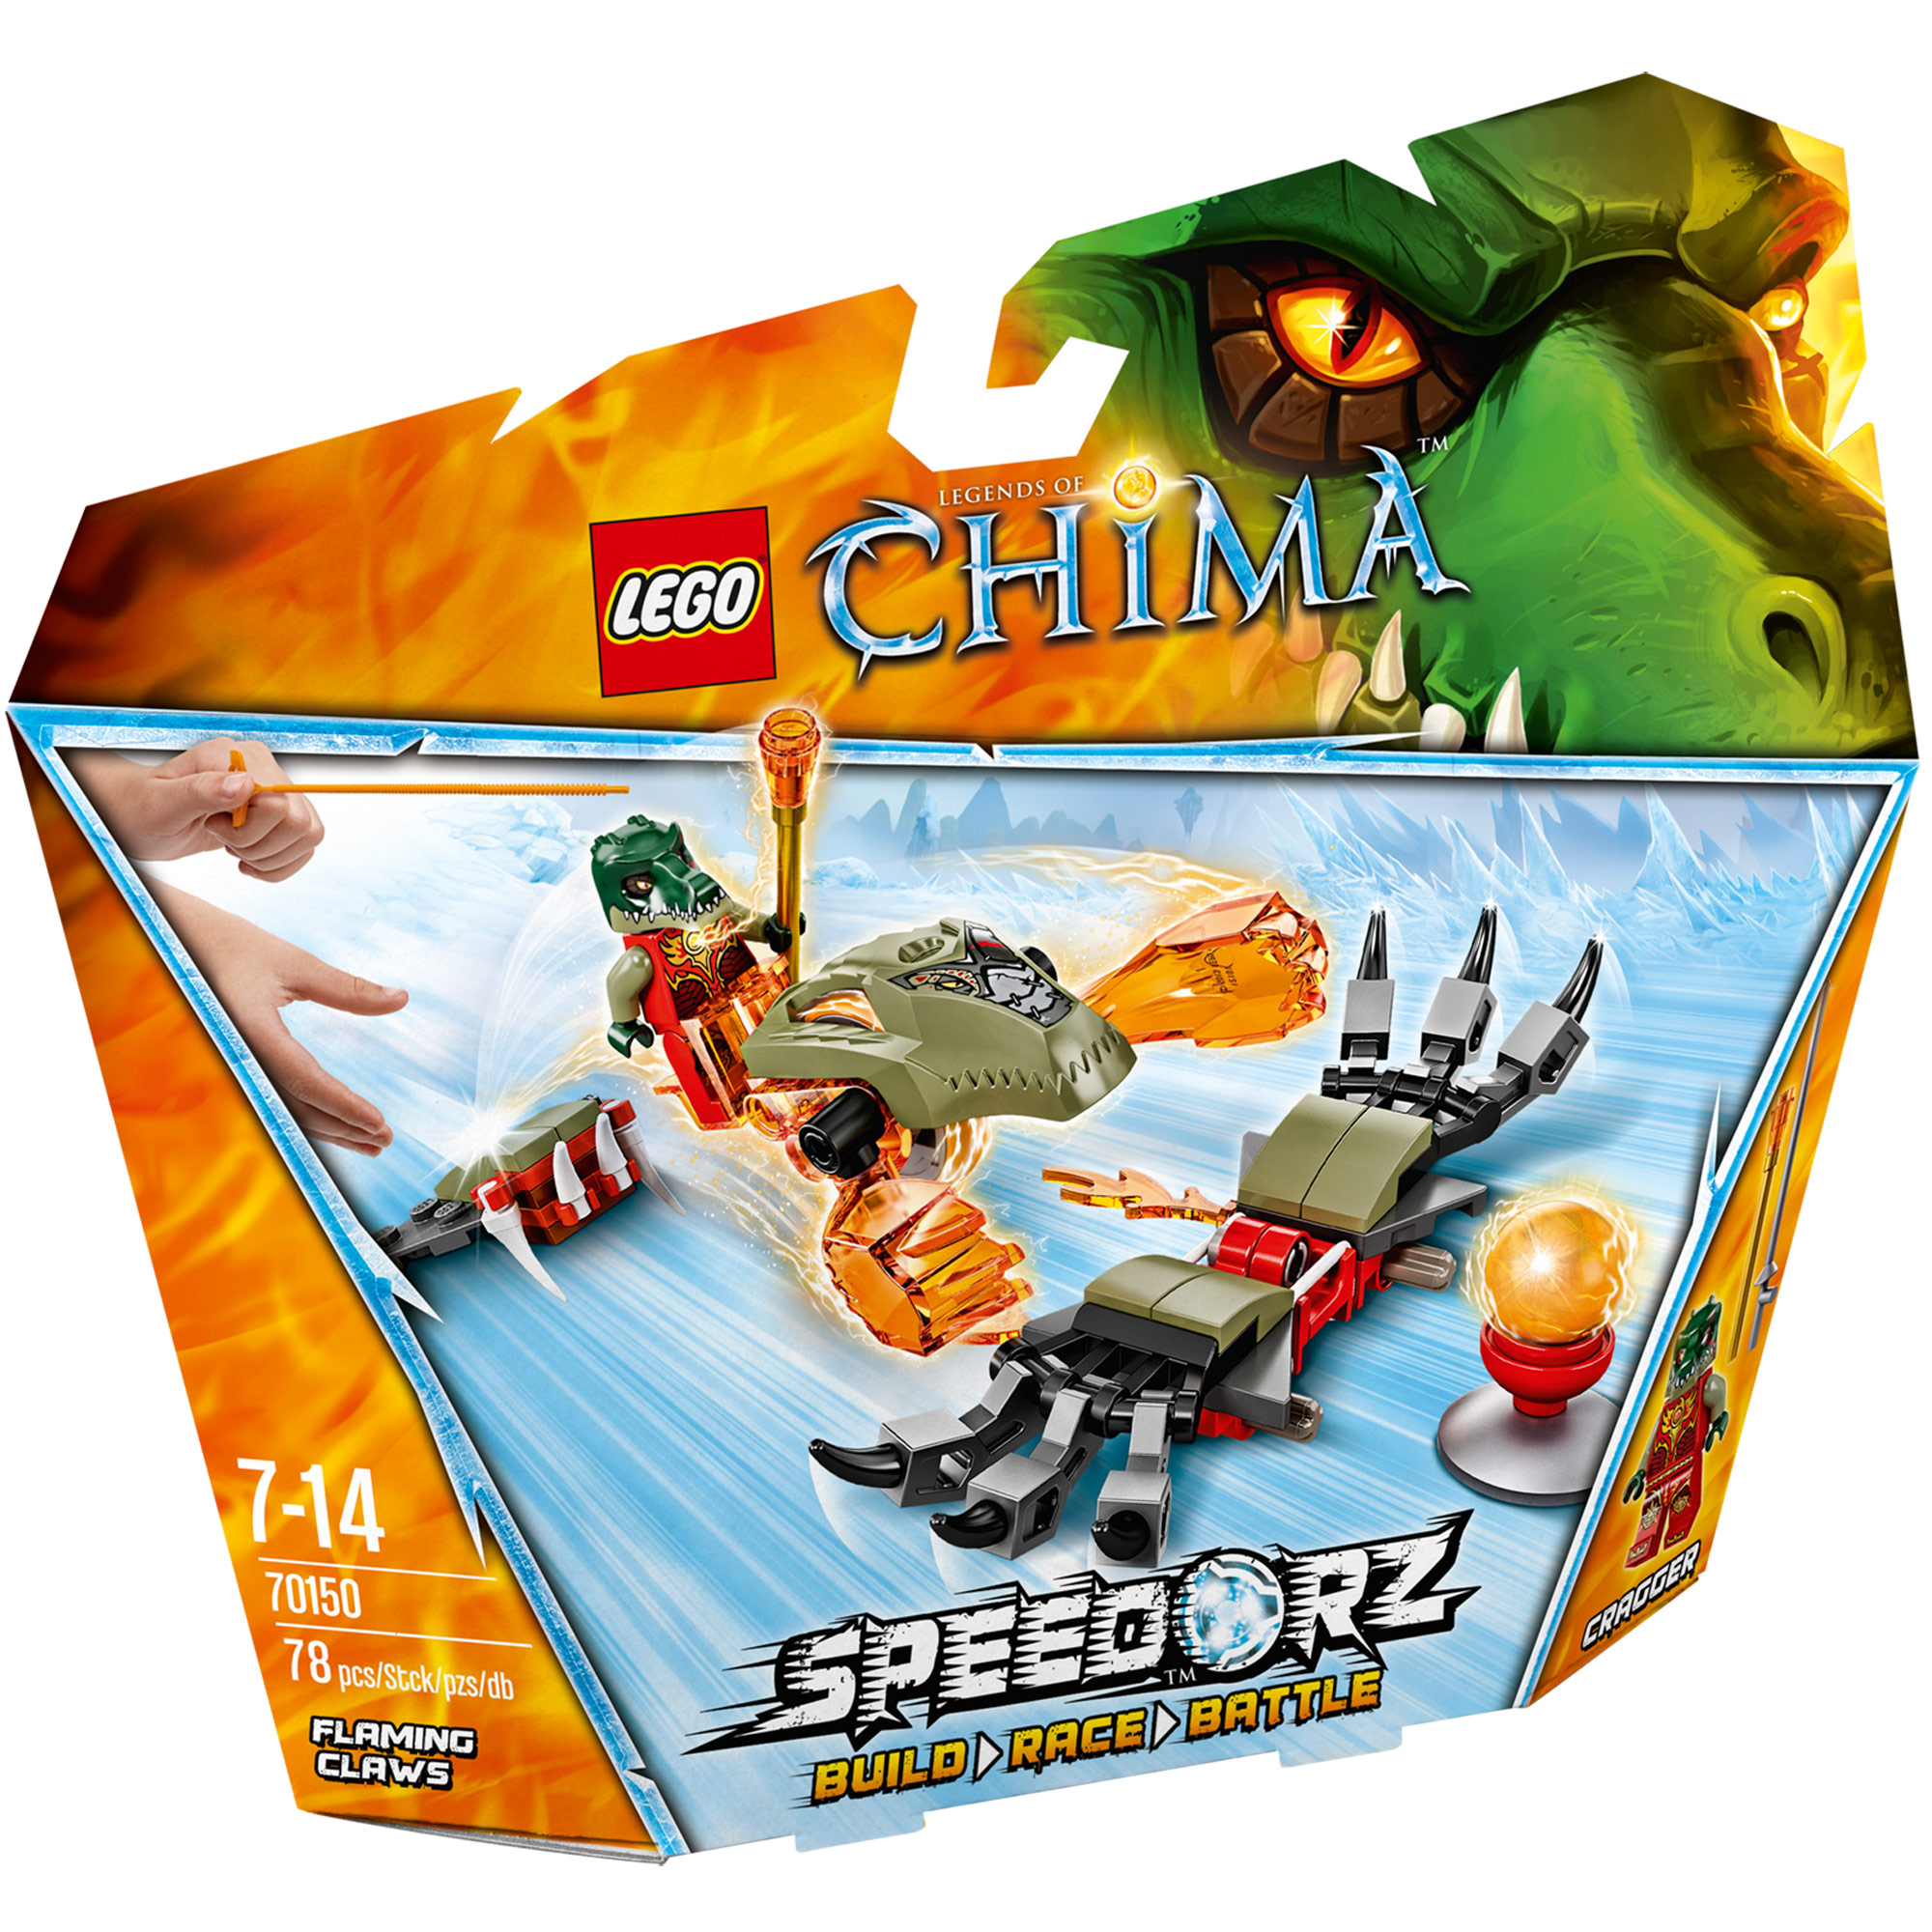 Picture of LEGO Chima Flaming Claws 70150